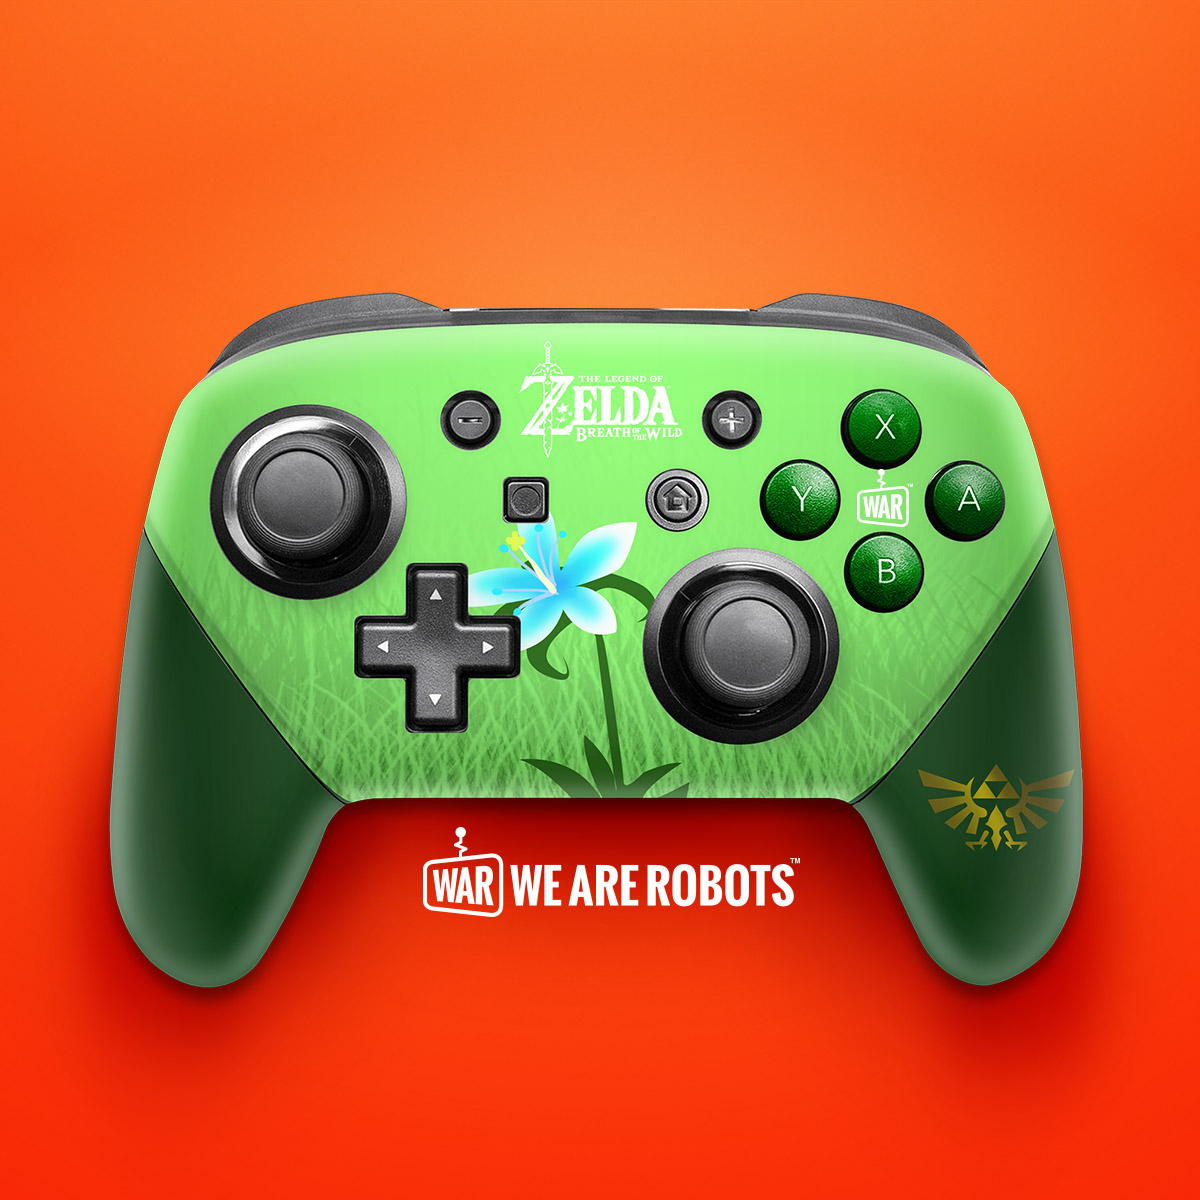 Zelda 2 - Nintendo Switch Pro_Controller_Front+Back copy.jpg